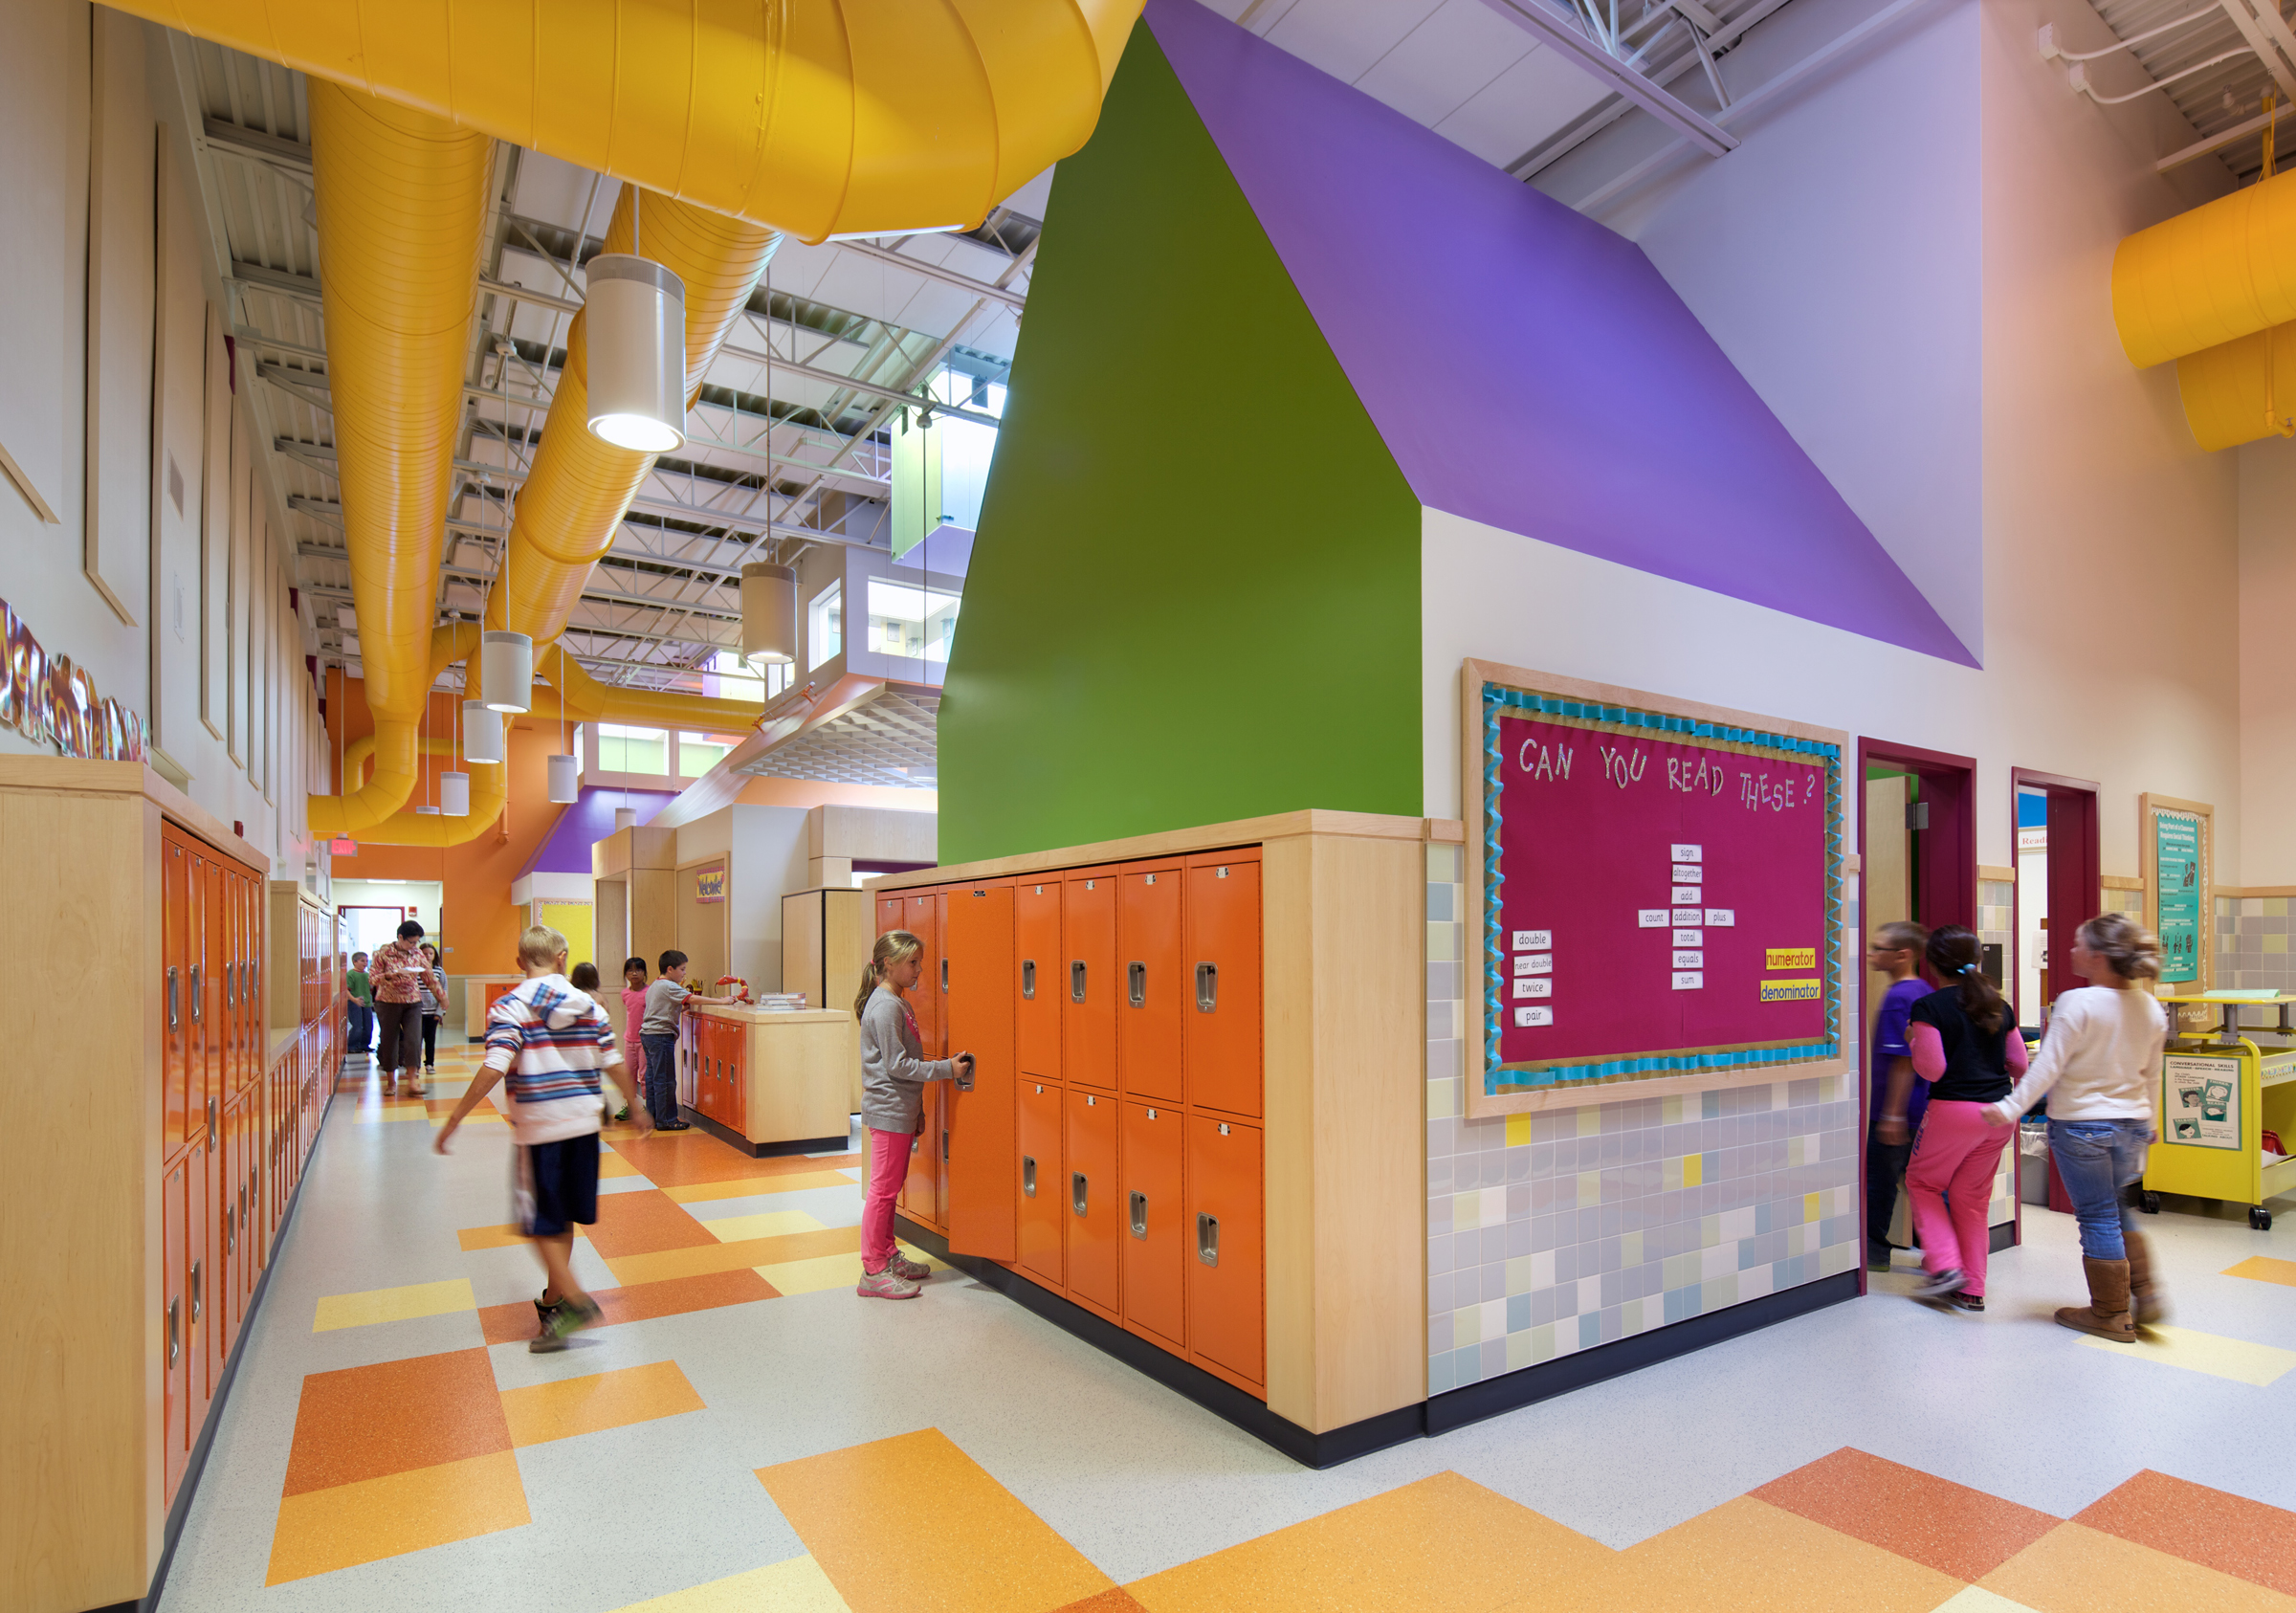 Concord schools abbot downing christa mcauliffe mill brook architect magazine concord nh for Interior design schools in philadelphia